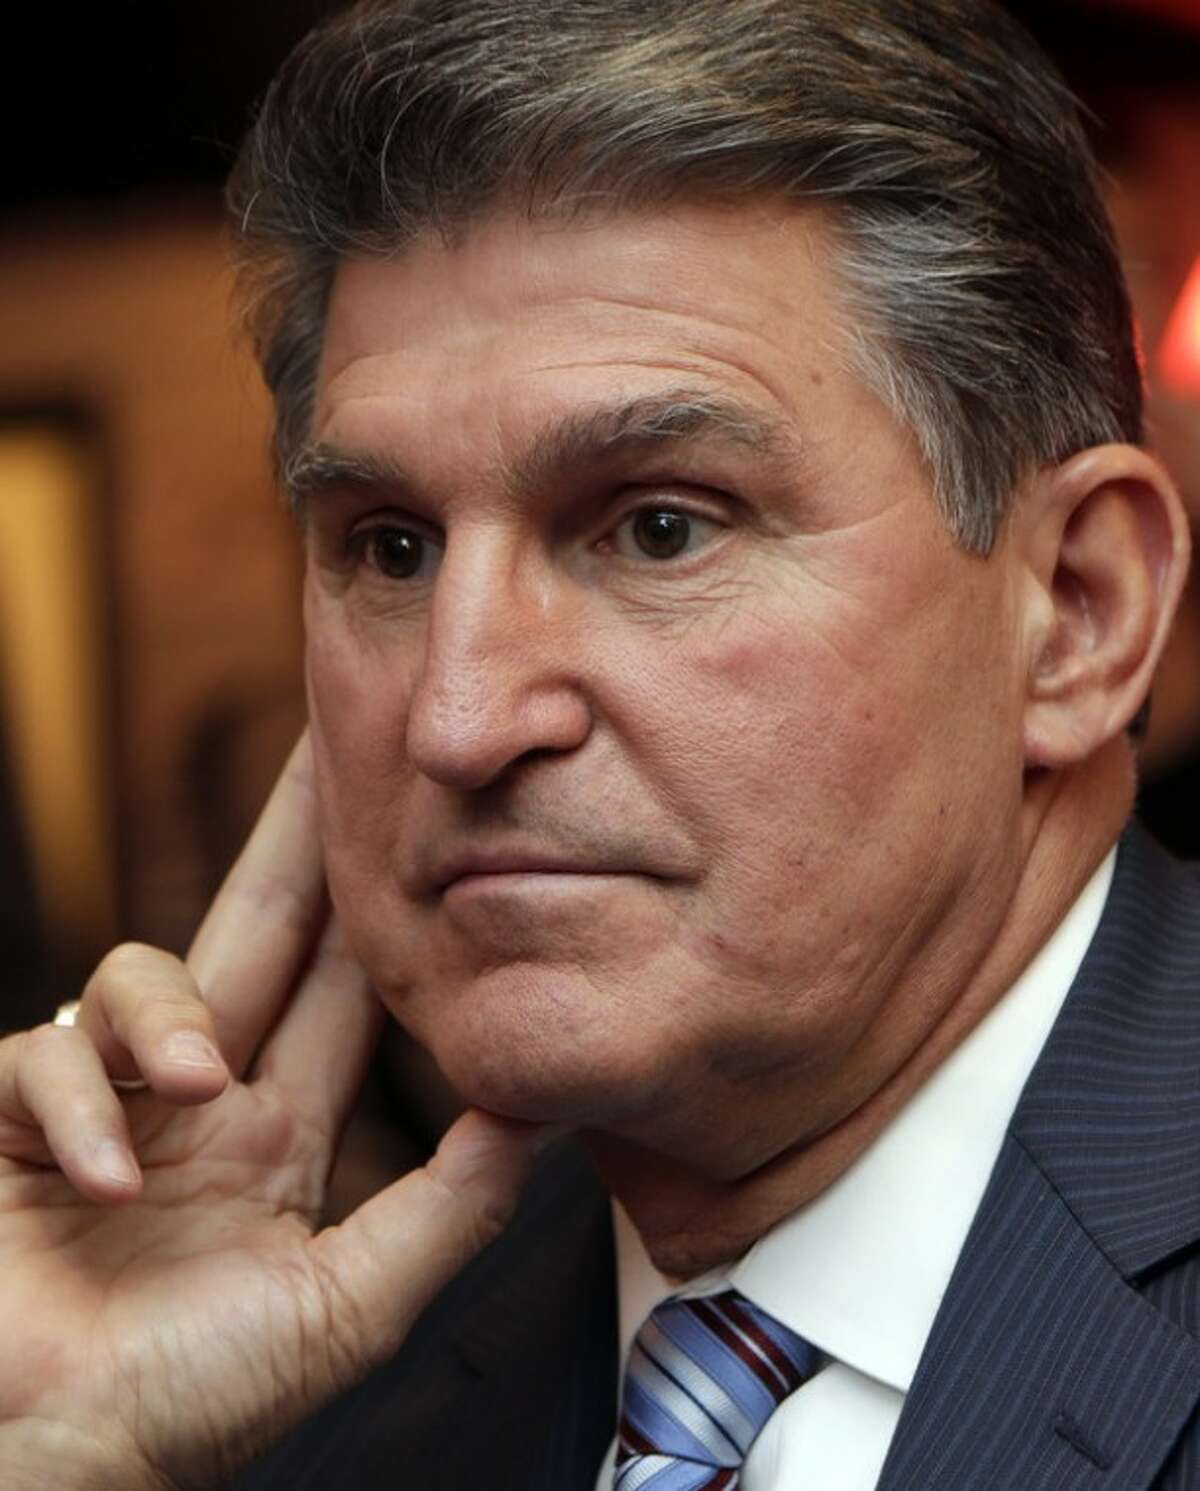 FILE - In this Nov. 6, 2012 file photo, Sen. Joe Manchin, D-WV., watches vote returns at his election watch party in Fairmont, W. Va. On Monday, Sen. Joe Manchin, a lifelong member of the National Rifle Association, said it was time to discuss gun policy and move toward action on gun regulation. (AP Photo/Dave Martin)